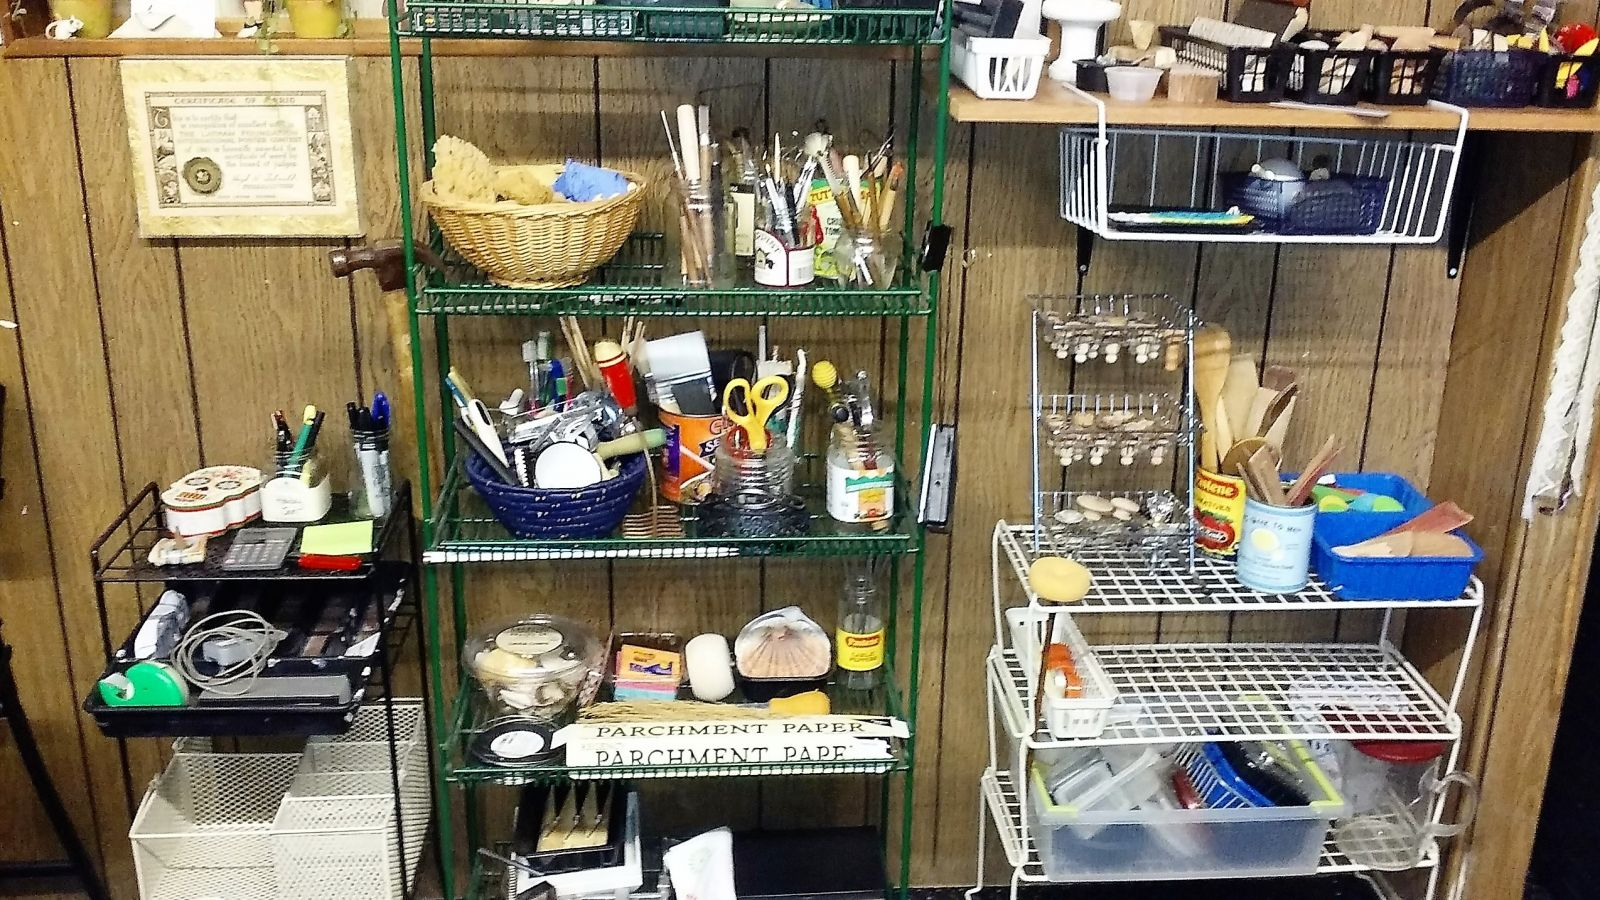 tools, stamps, more wire shelves